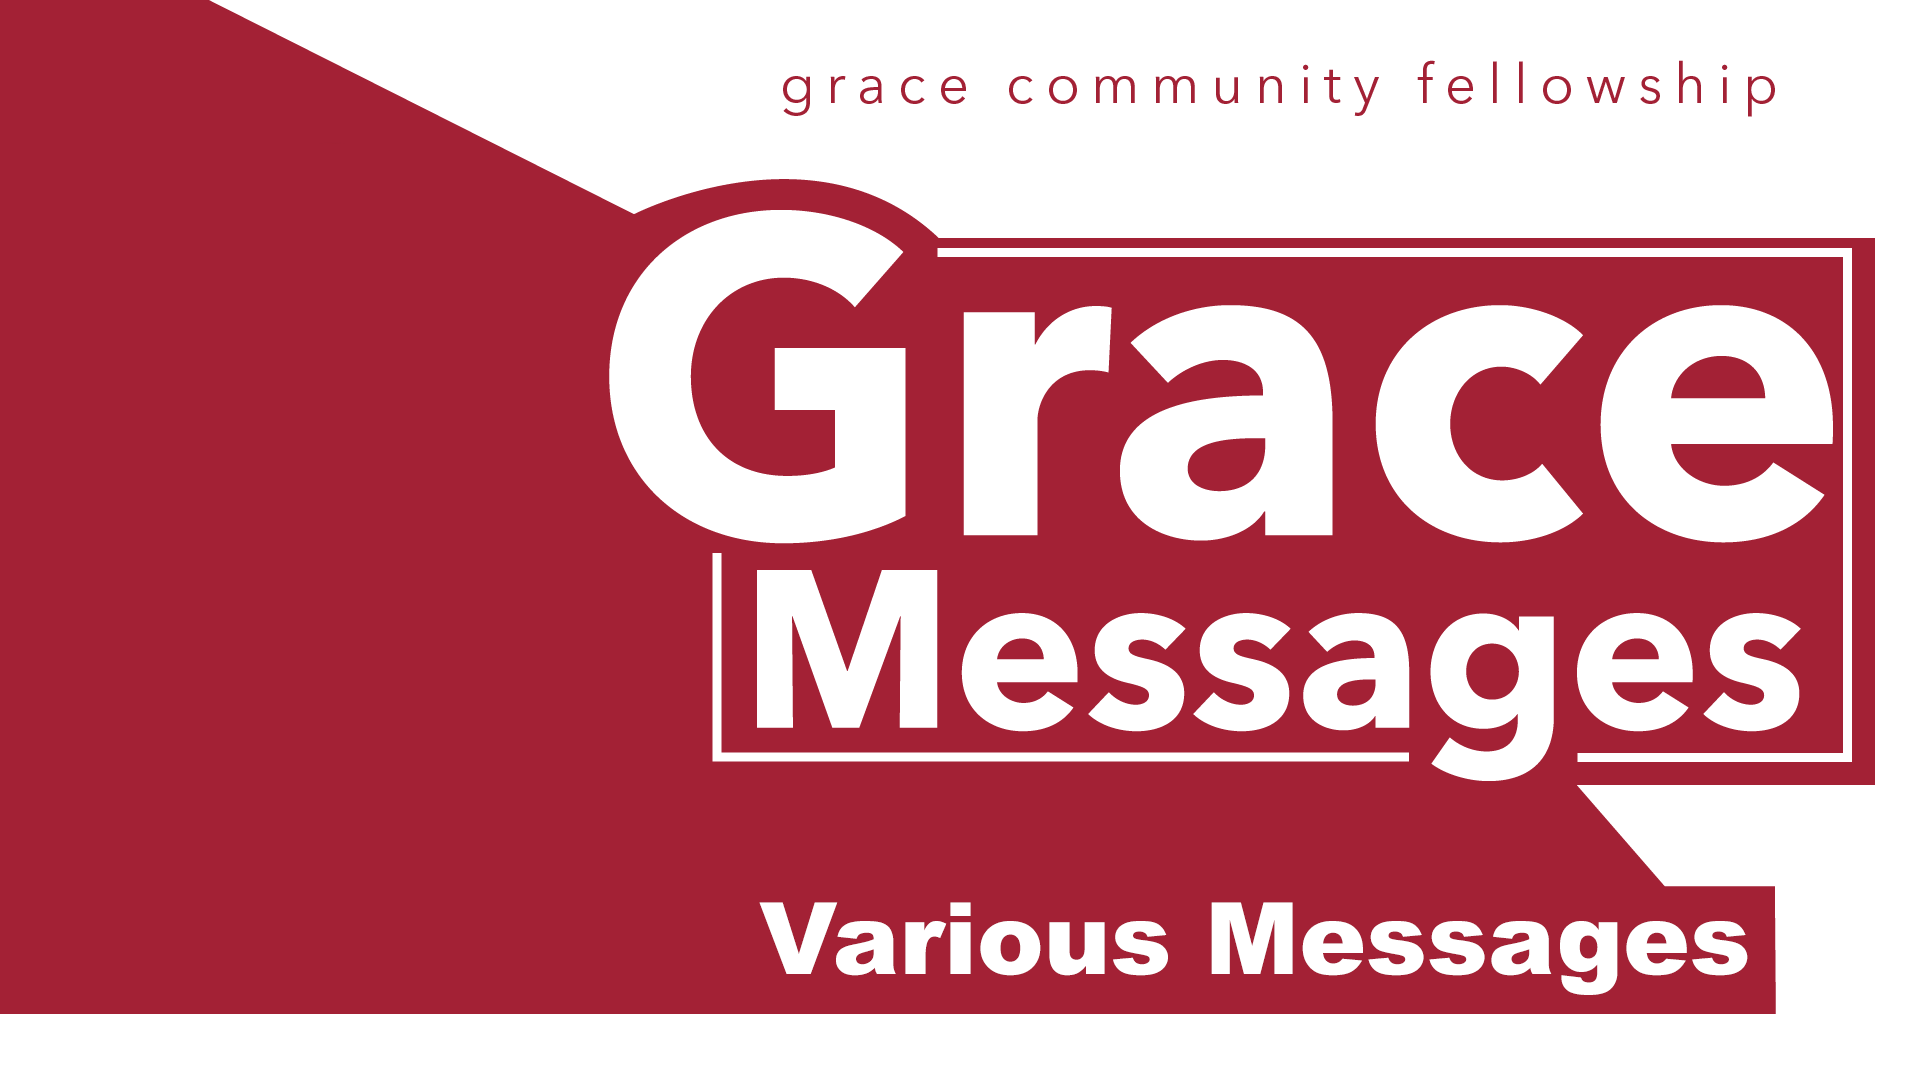 Various Messages - Listen to various uplifting, challenging, thought provoking, but always Bible-based messages by different speakers and pastors that have spoken at Grace Community Fellowship.